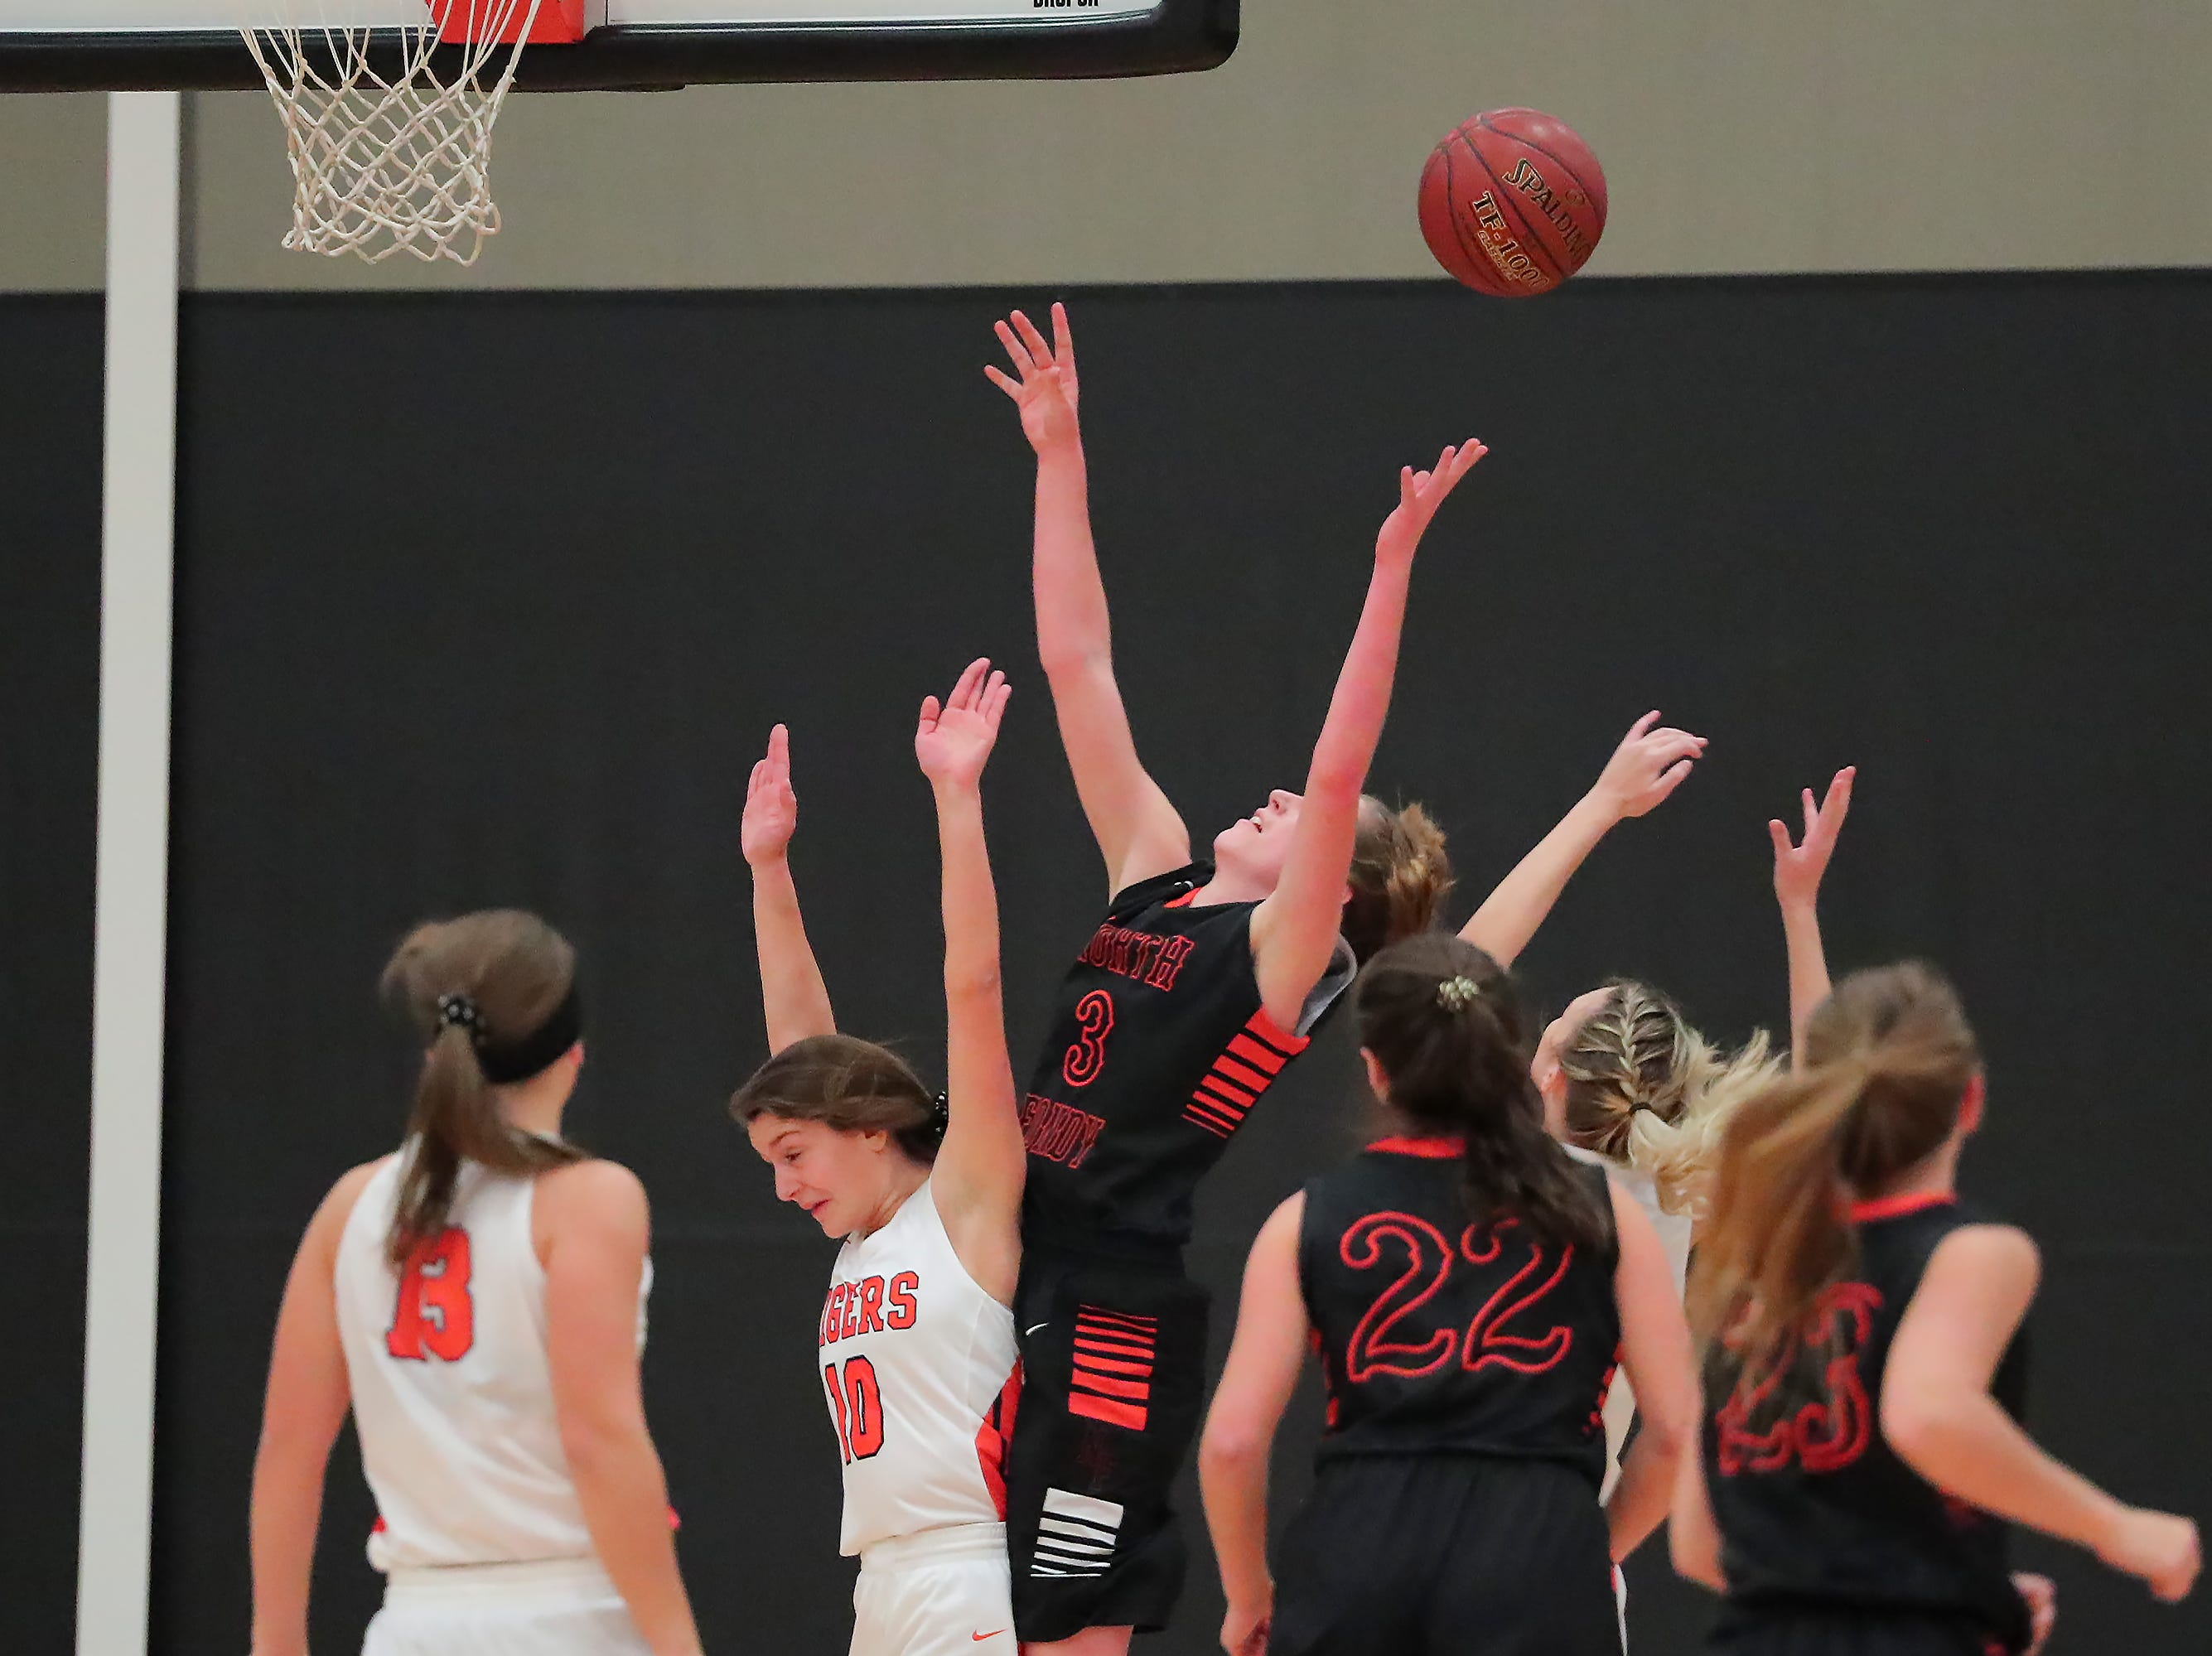 Rebecca Kingsland (3) of North Fond du Lac reaches for a rebound. The Ripon Tigers hosted the North Fond du Lac Orioles in a non-conference basketball game Thursday evening, November 15, 2018.